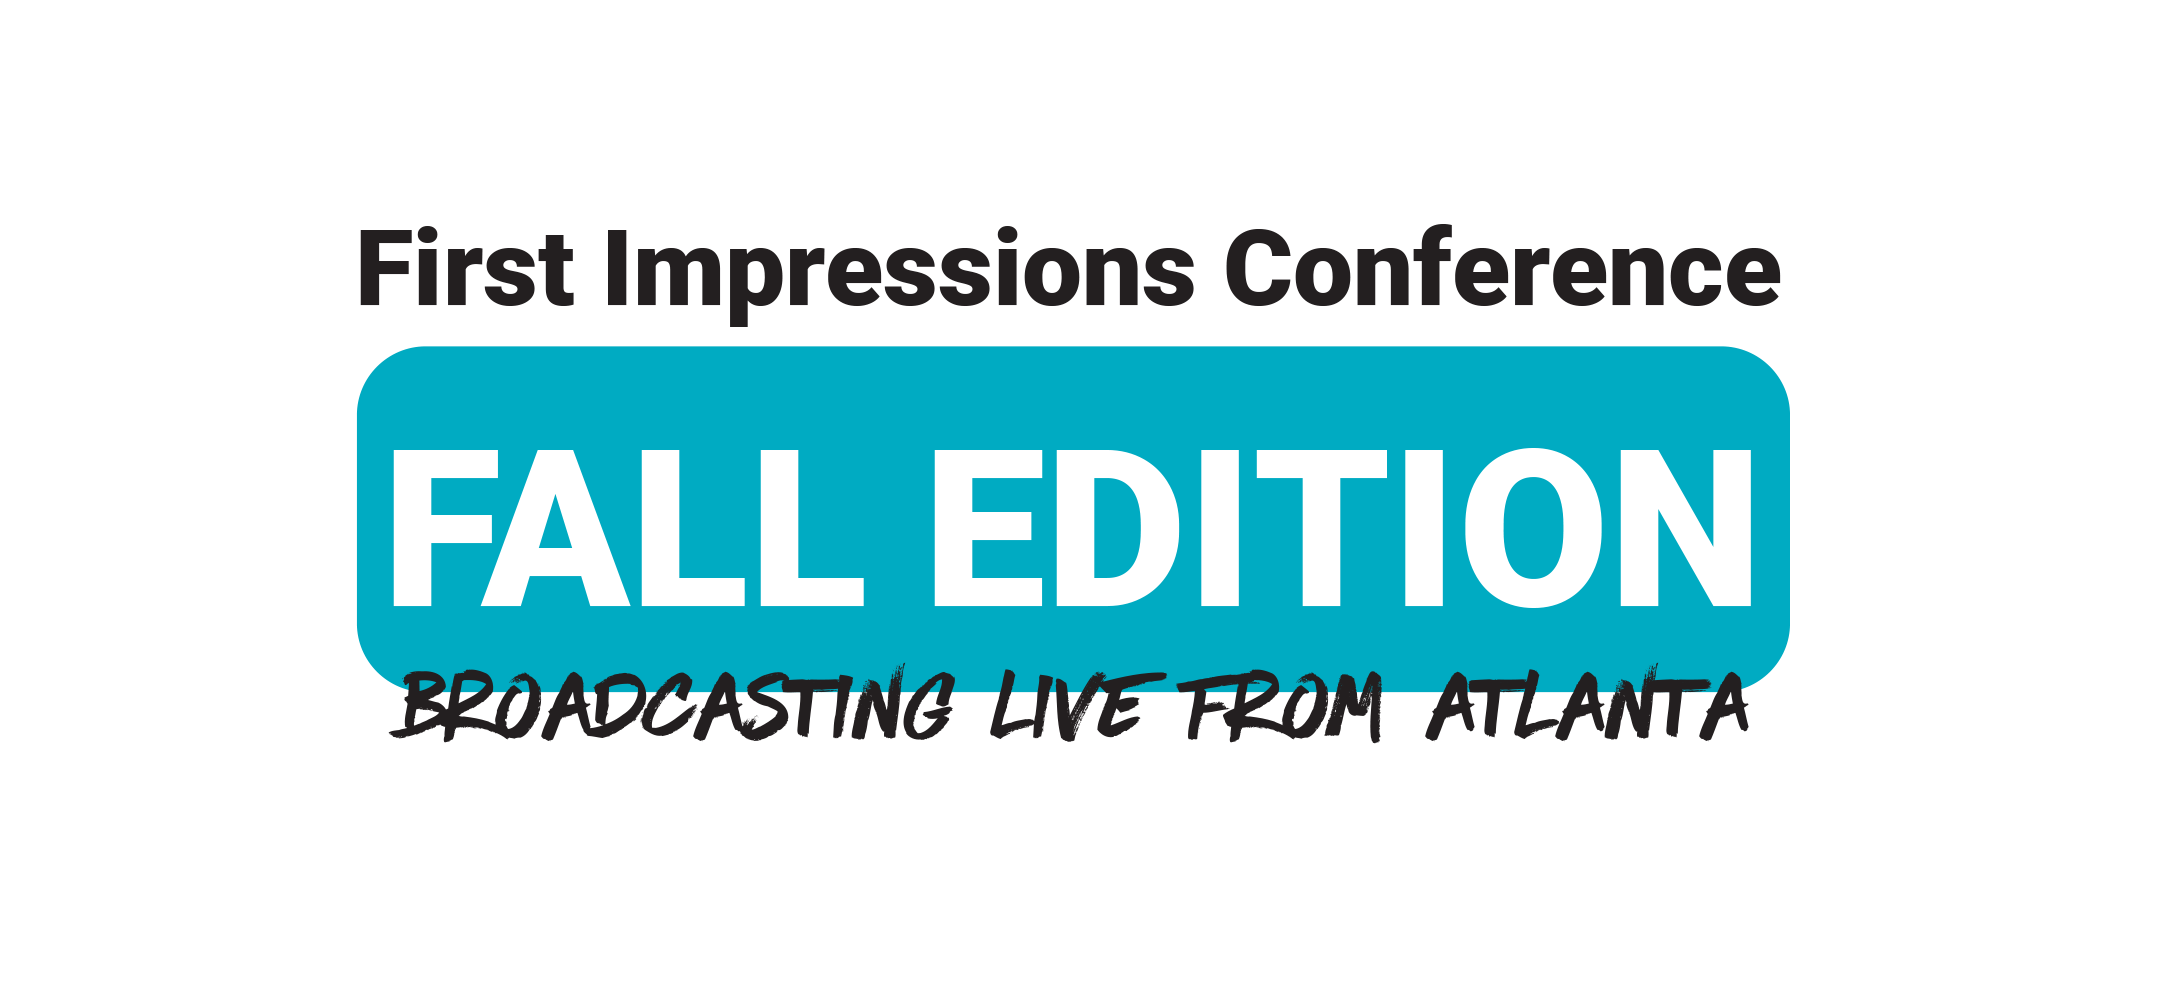 First Impressions Conference Logo